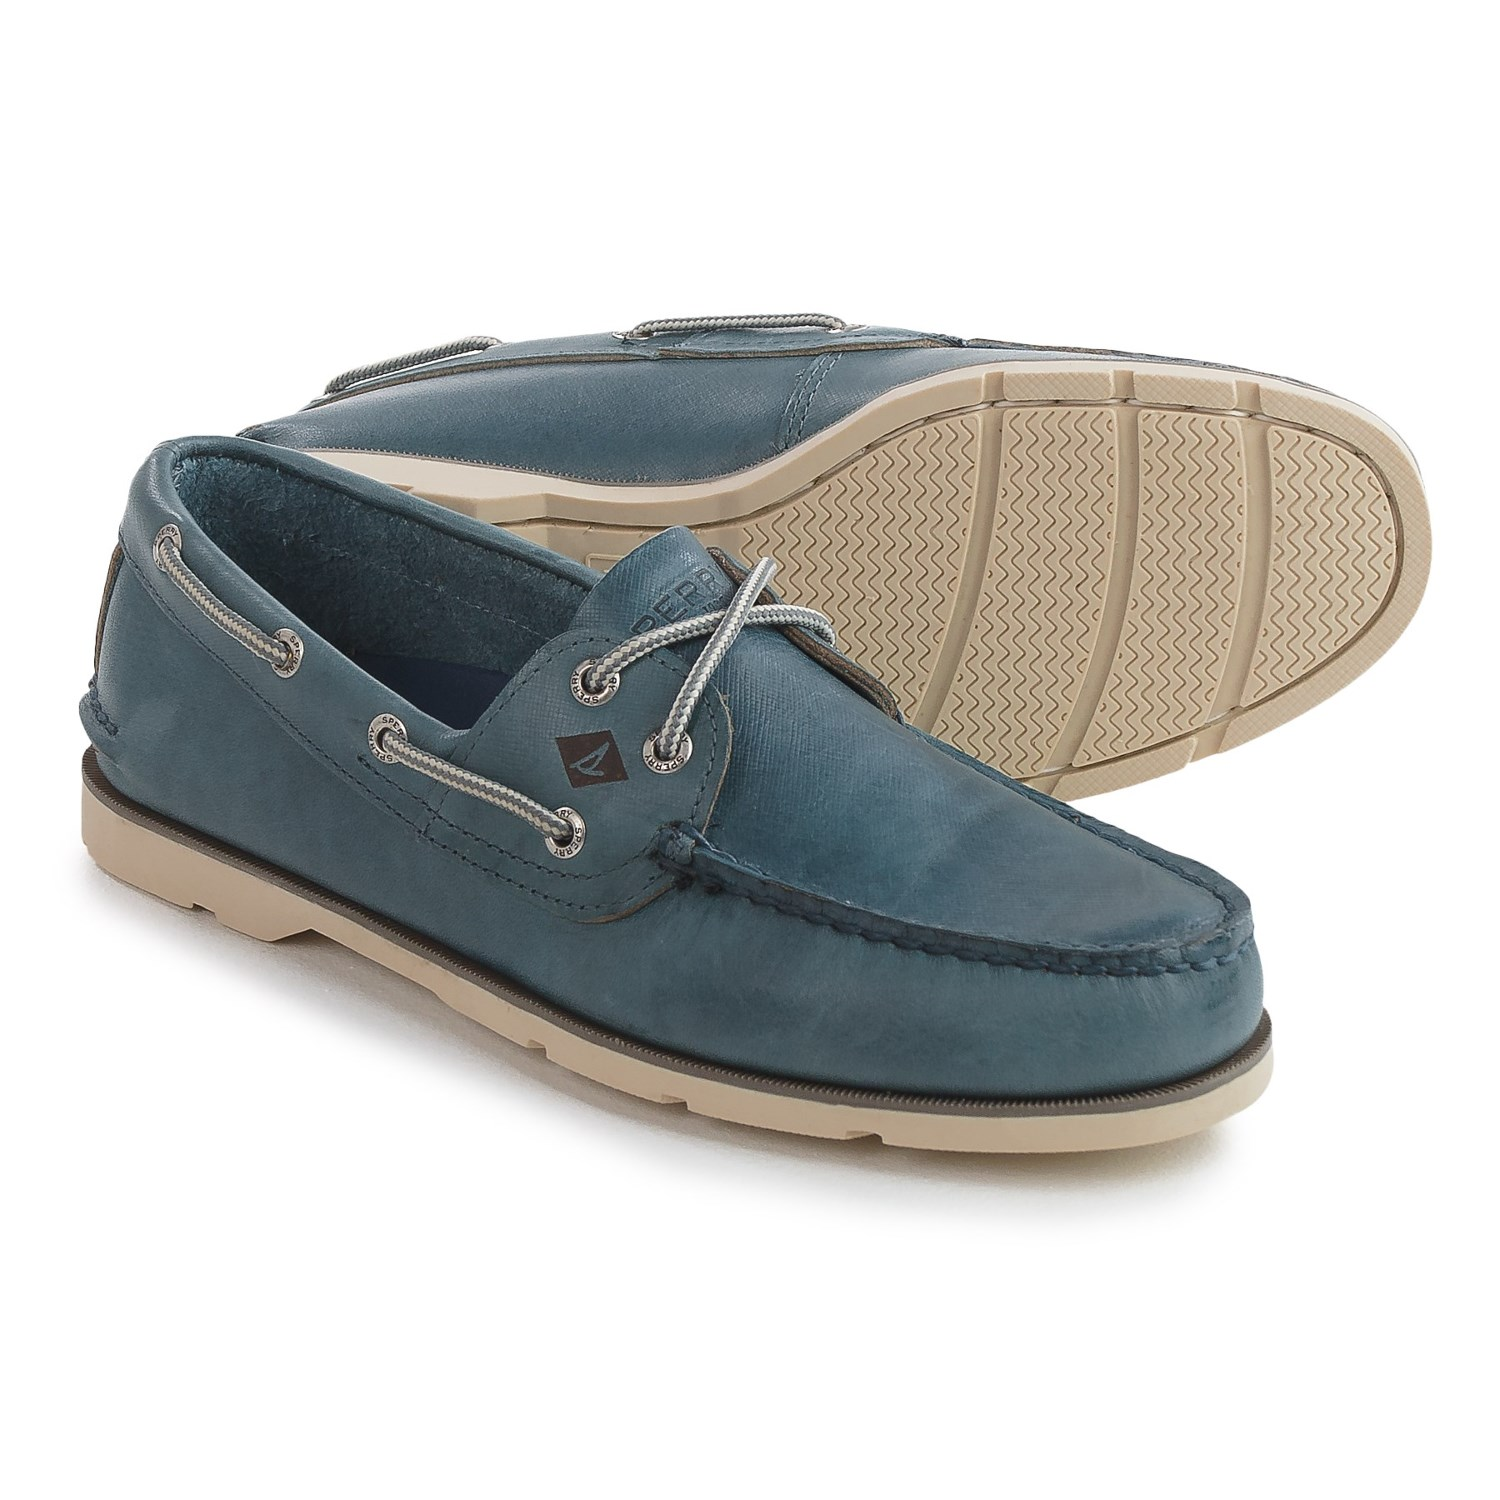 Best Maine Boat Shoes